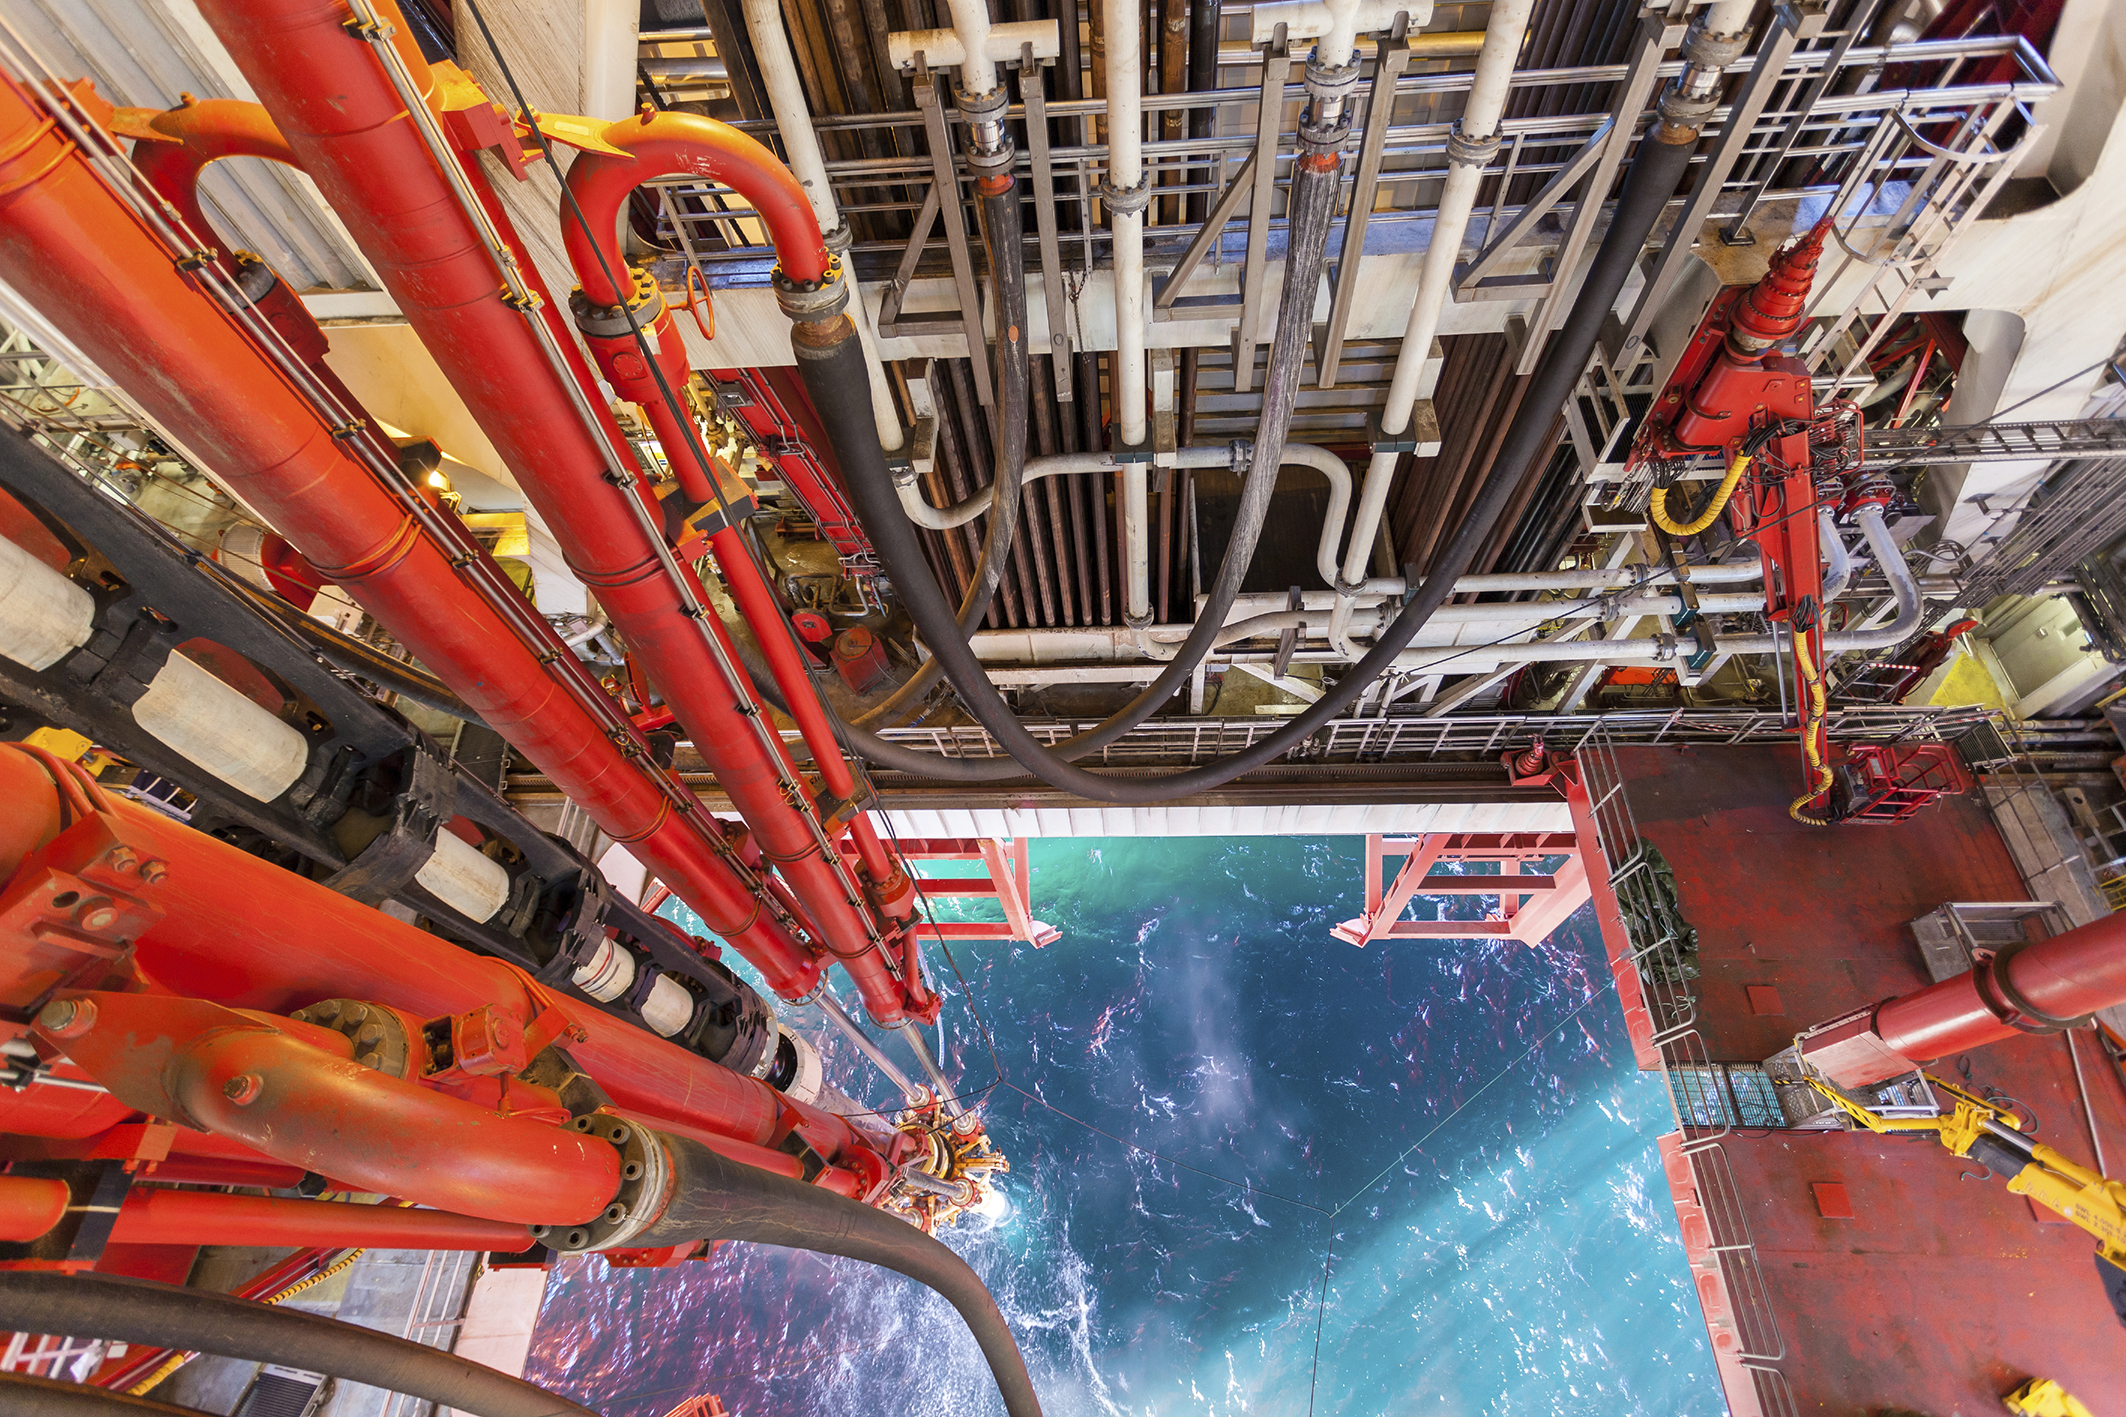 Reliable technology improves efficiency for offshore industries